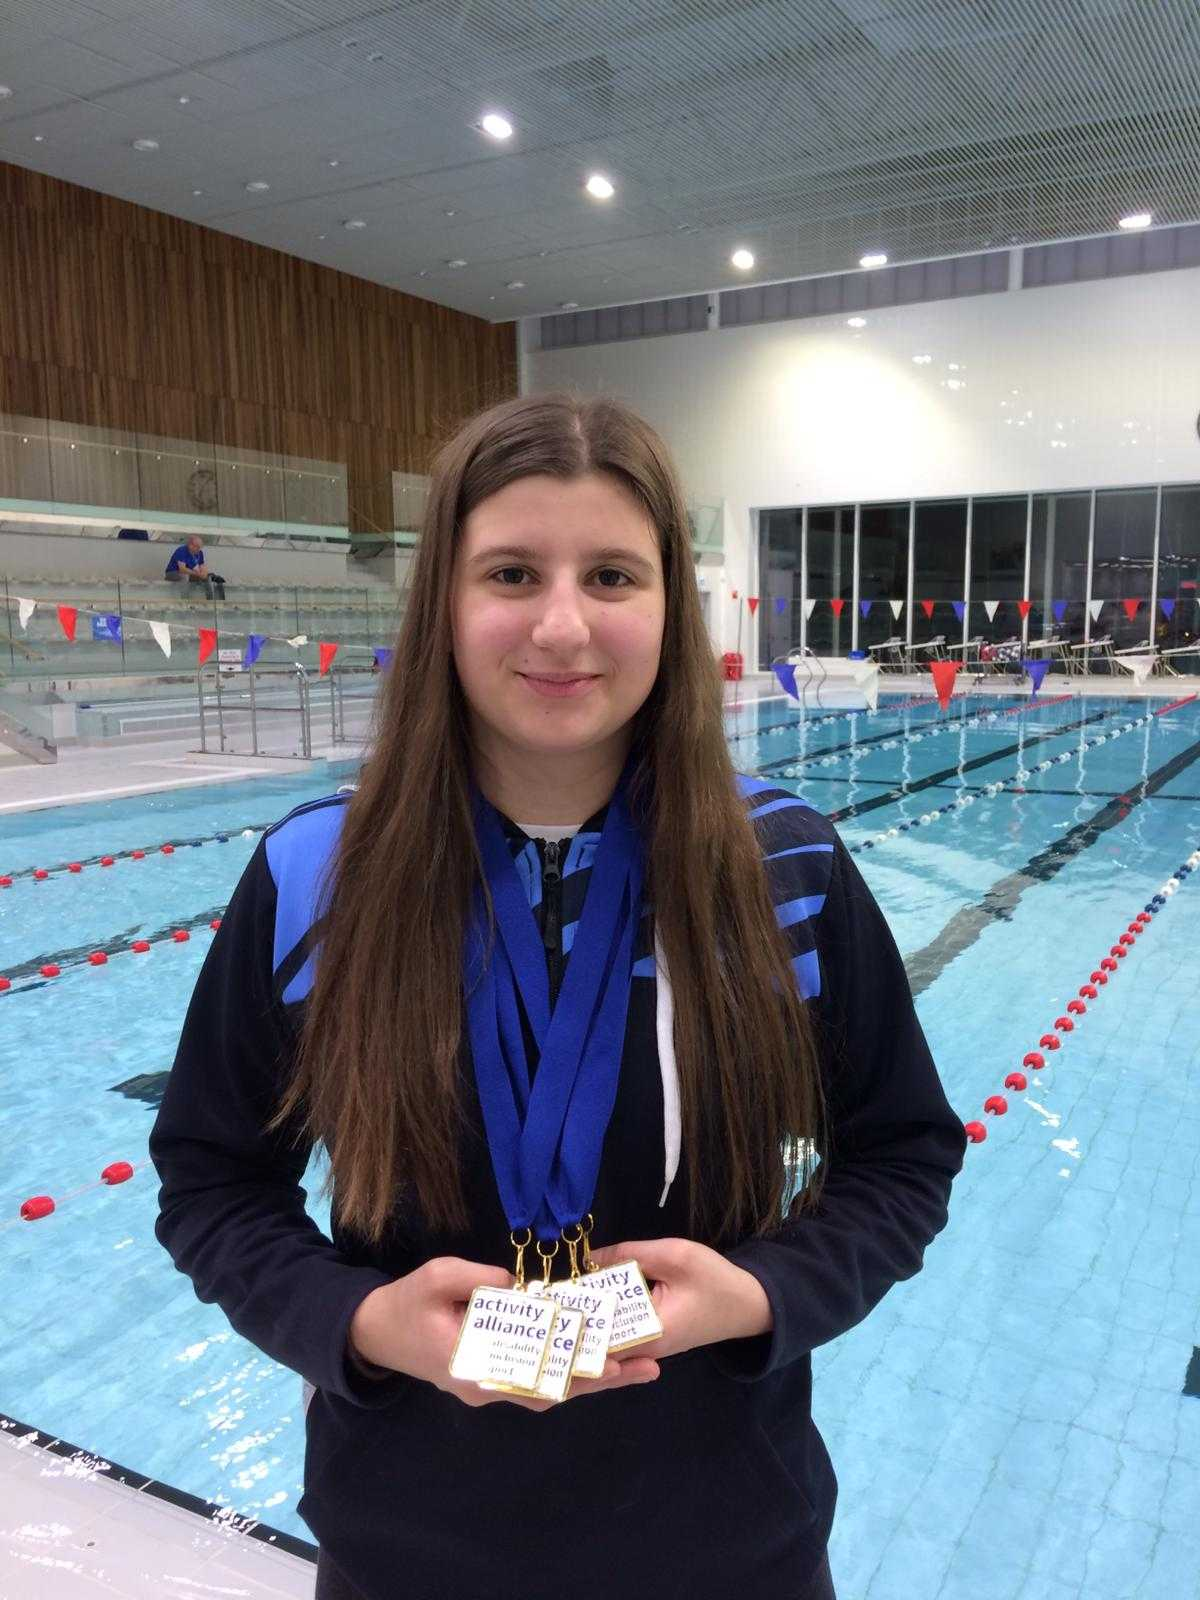 Largs swimmer Abby Kane's clean sweep of gold medals